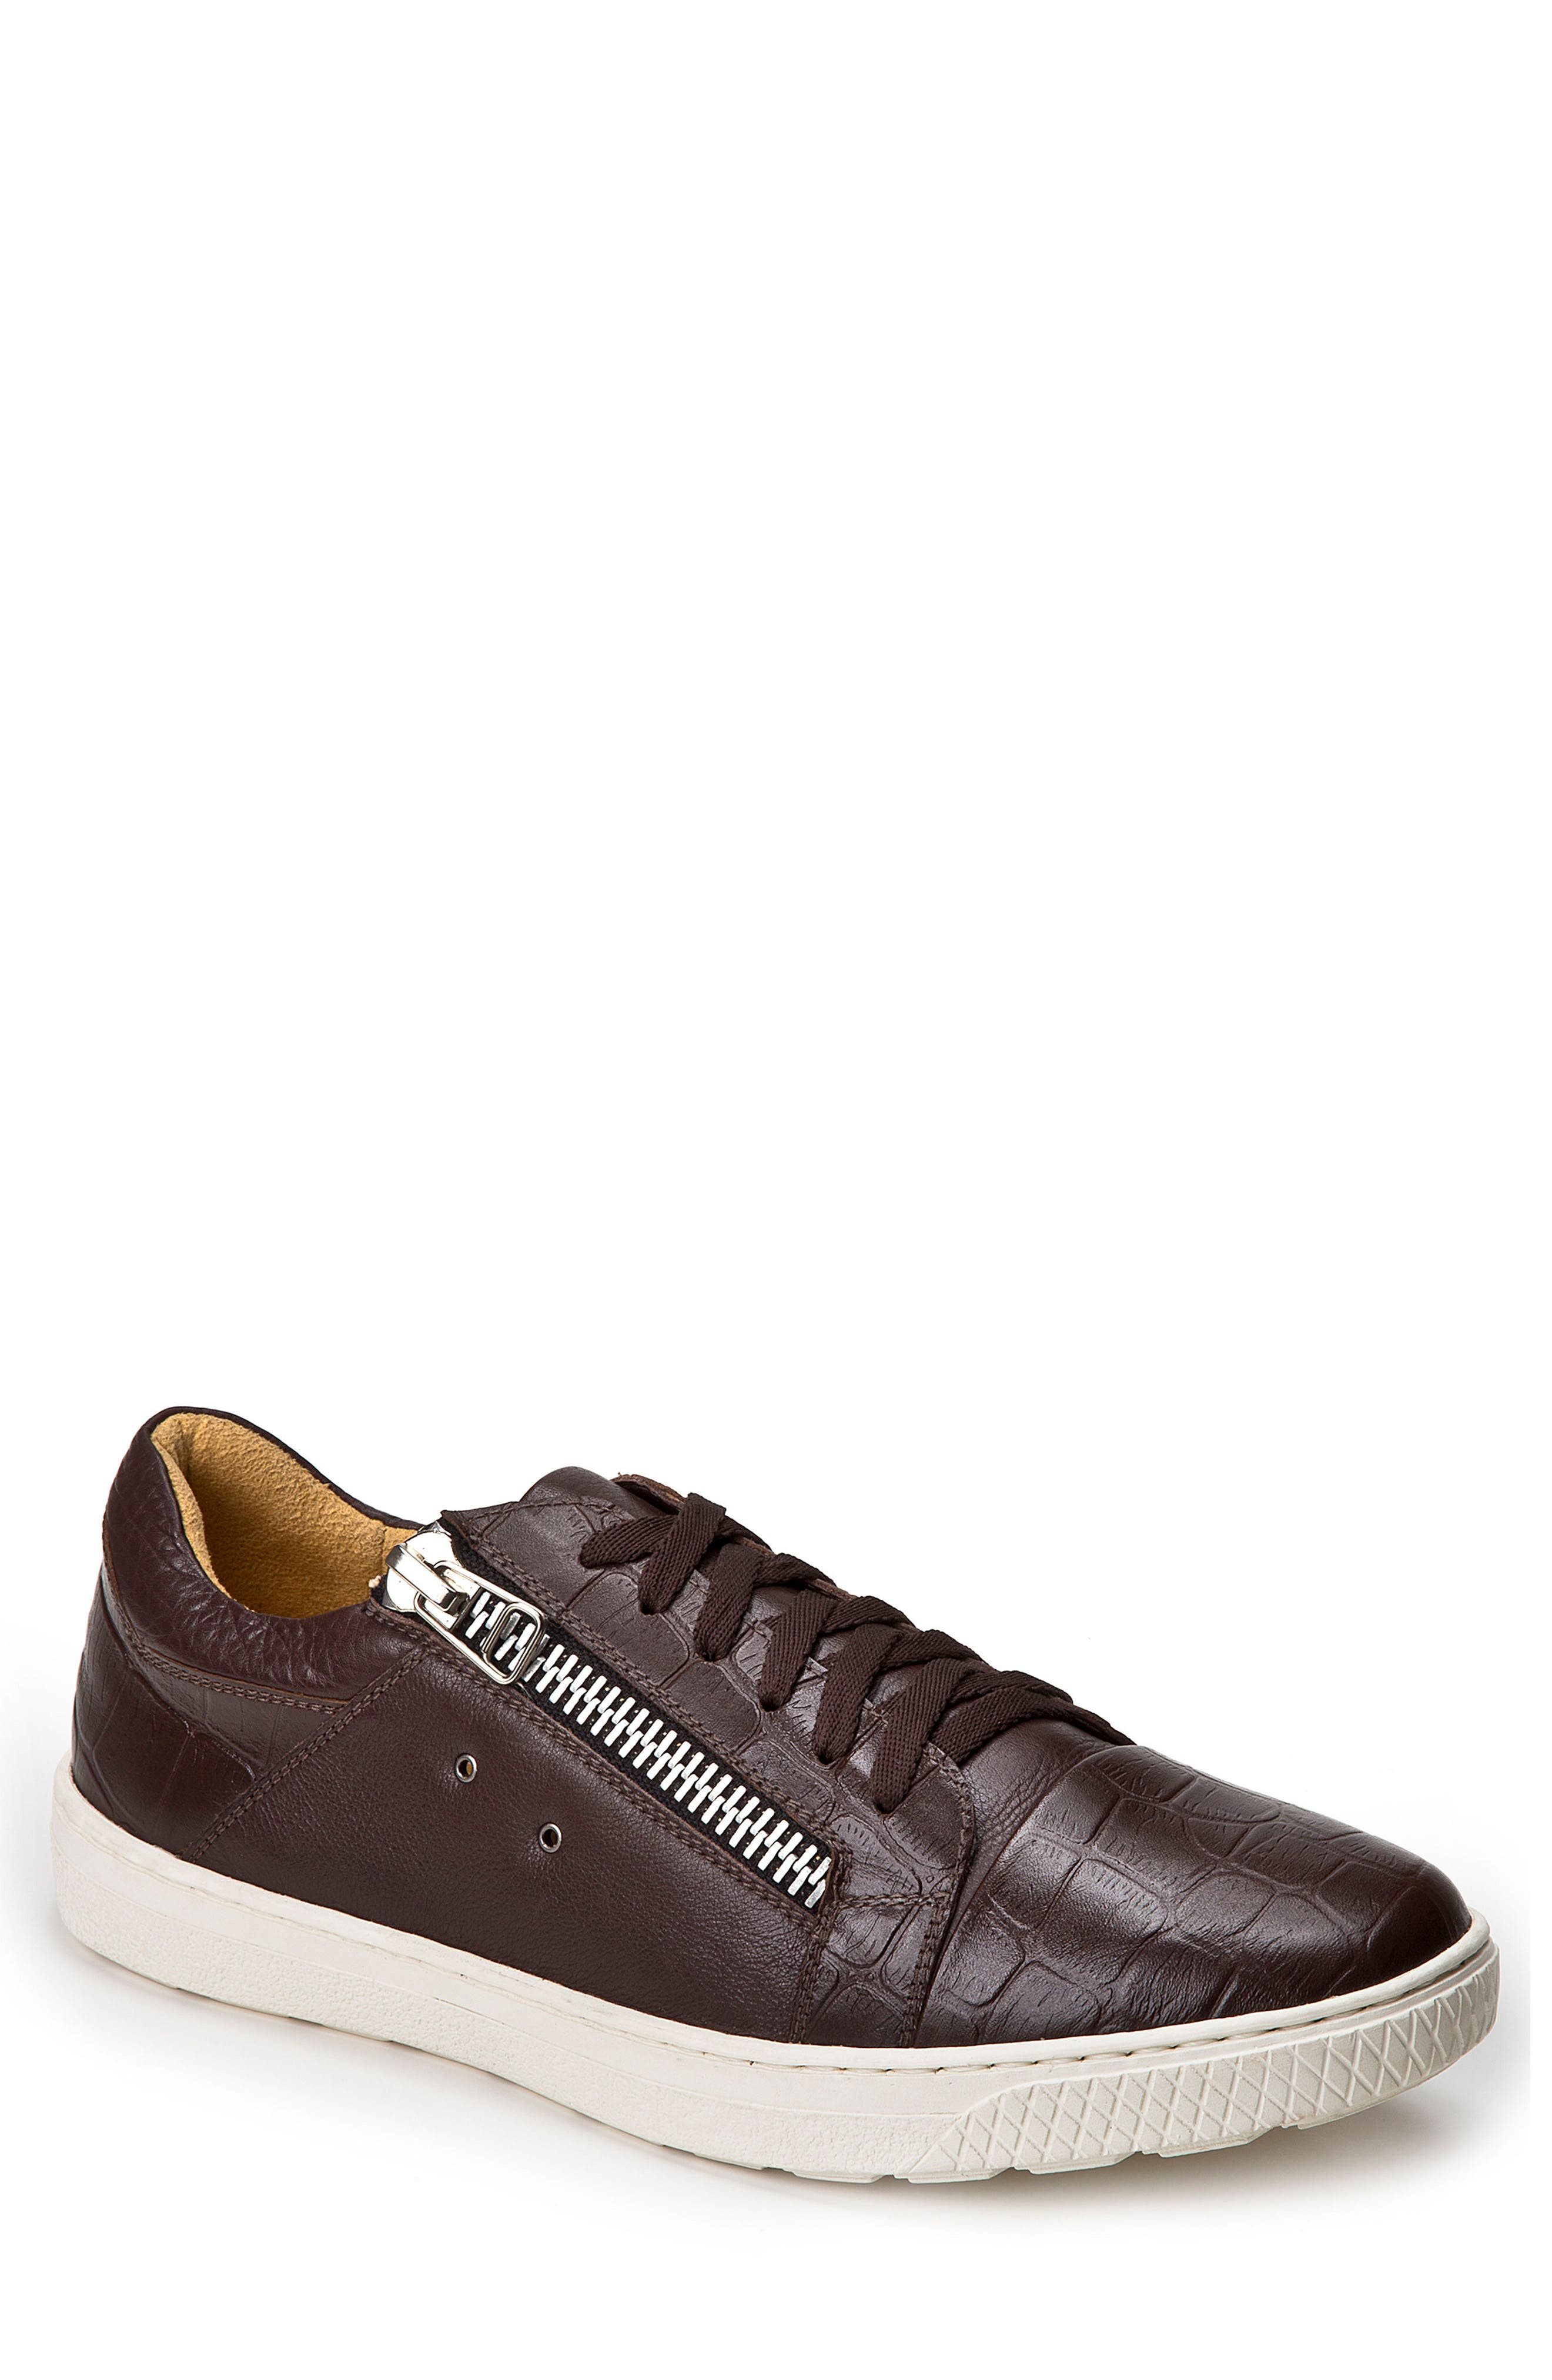 Cassius Side Zip Sneaker,                             Main thumbnail 2, color,